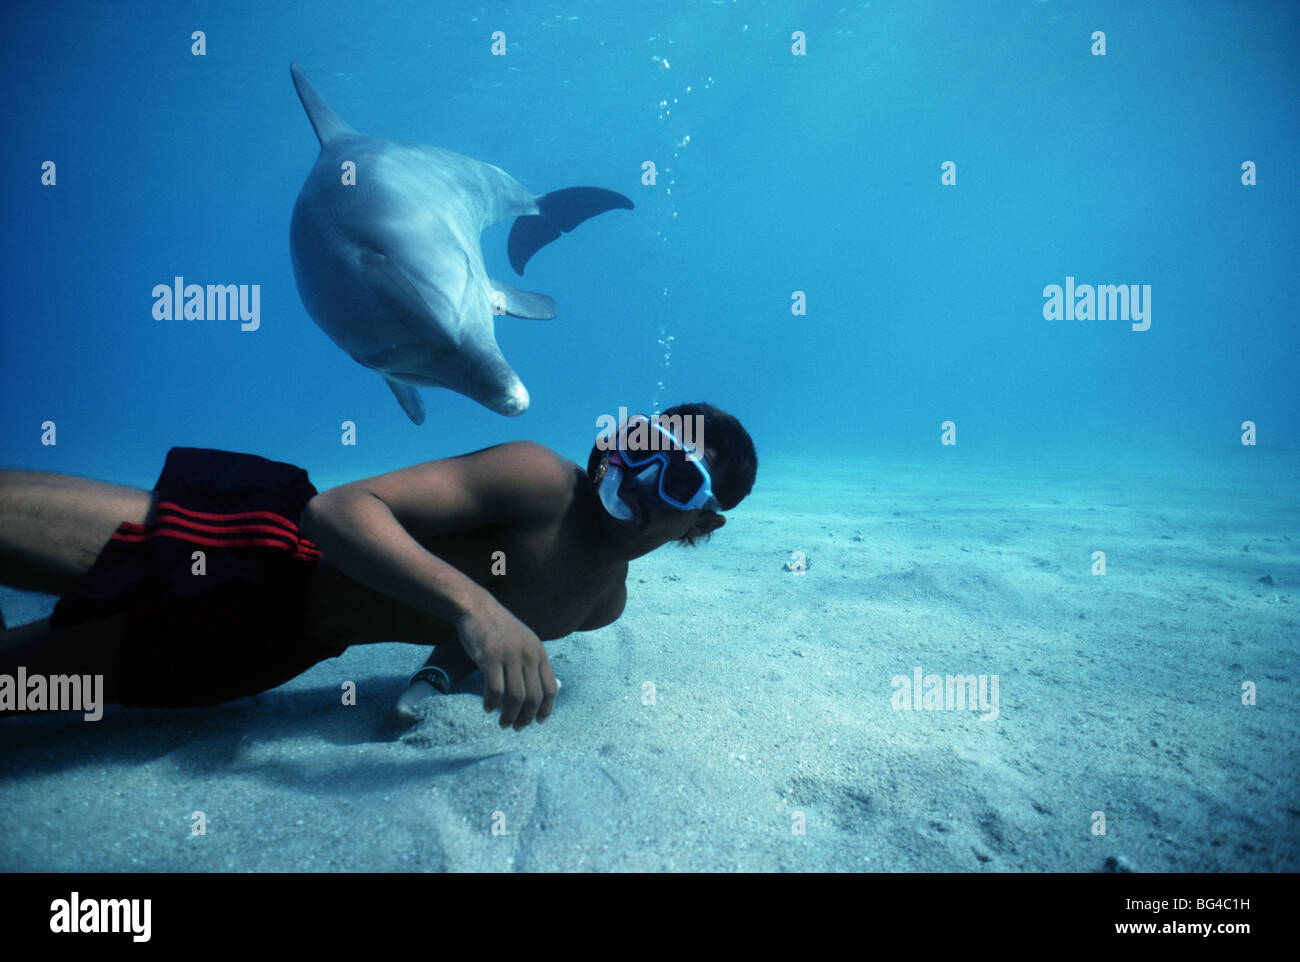 Snorkeling with Bottlenose Dolphin (Tursiops truncatus), Nuweiba, Egypt - Red Sea. - Stock Image